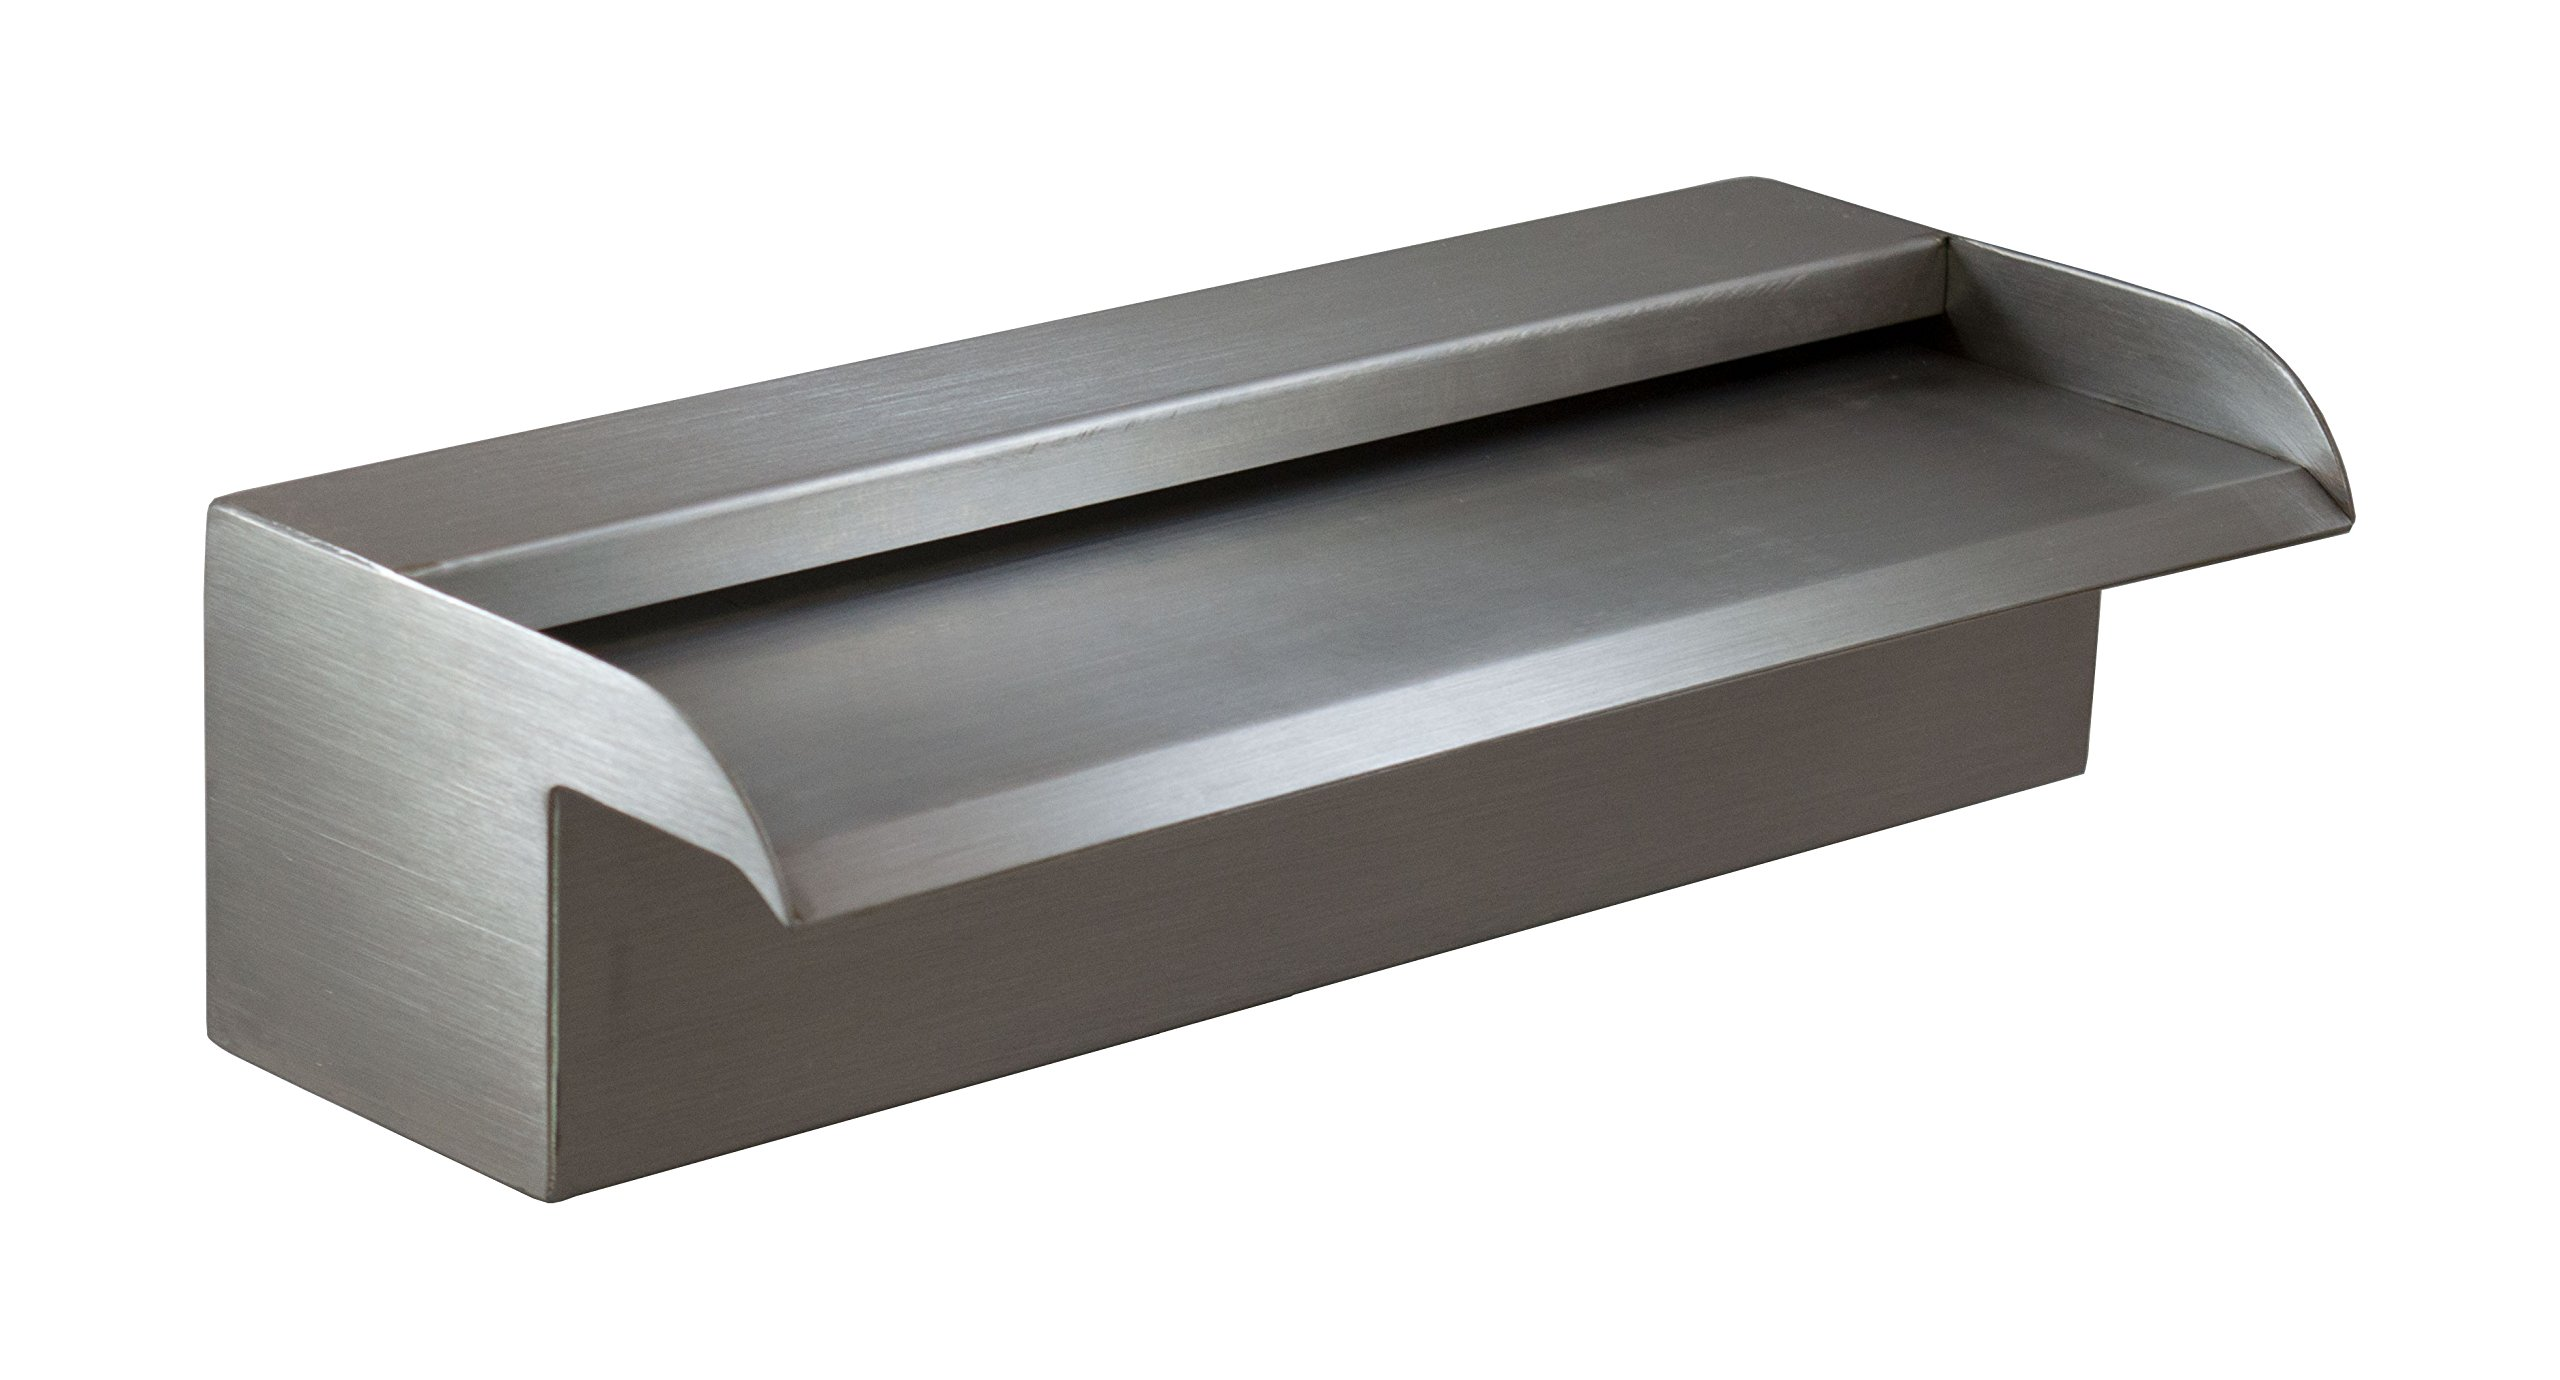 Nakano 12'' Waterfall Spillway for Fountains, Pools, Ponds - 316 Stainless (Recommended)